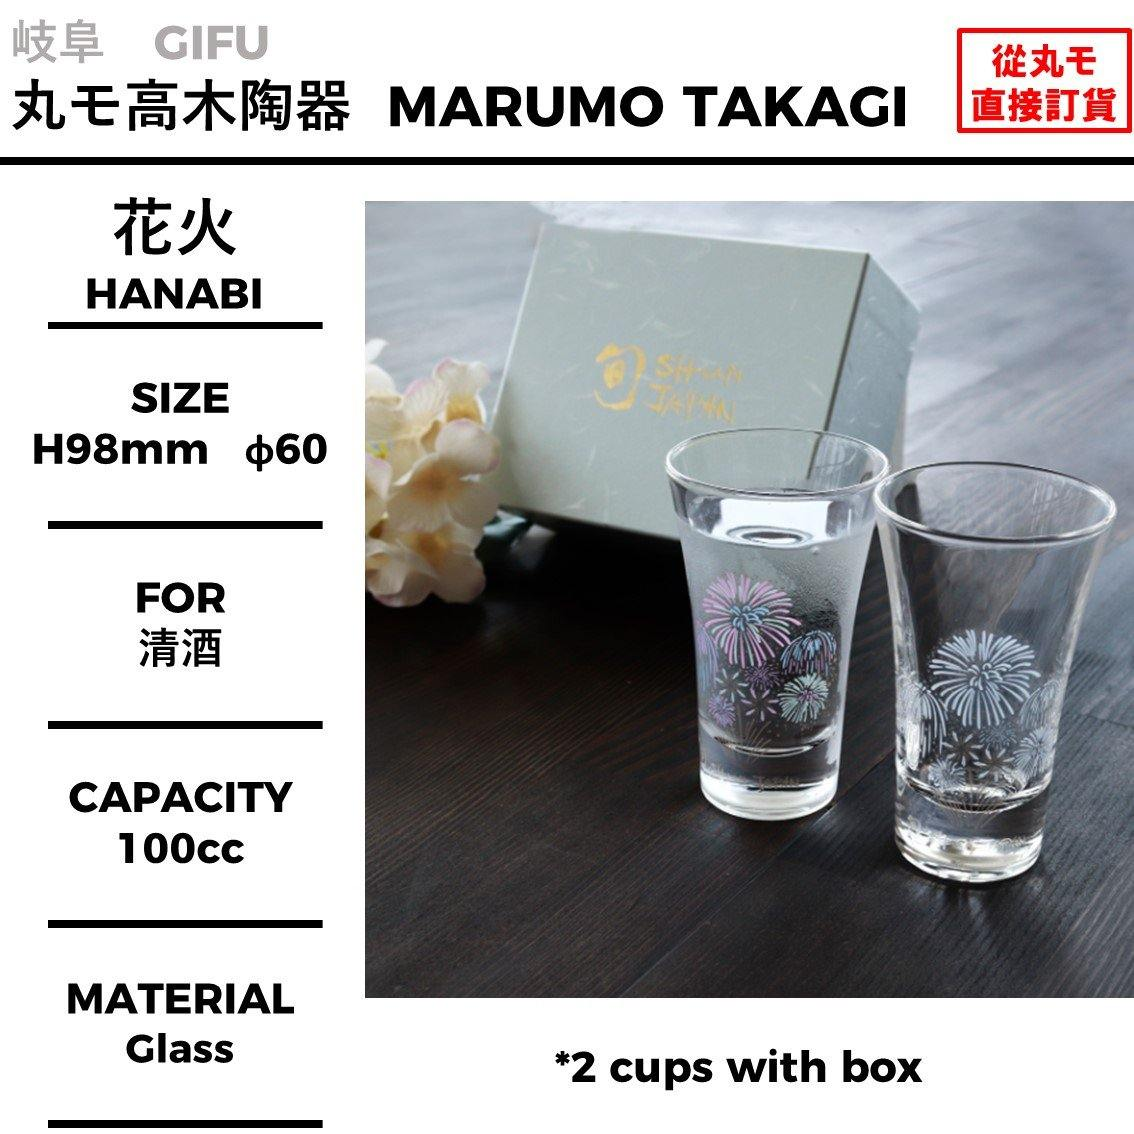 冷感花火 2 cups with box(For 清酒) - Sake no Wa Online